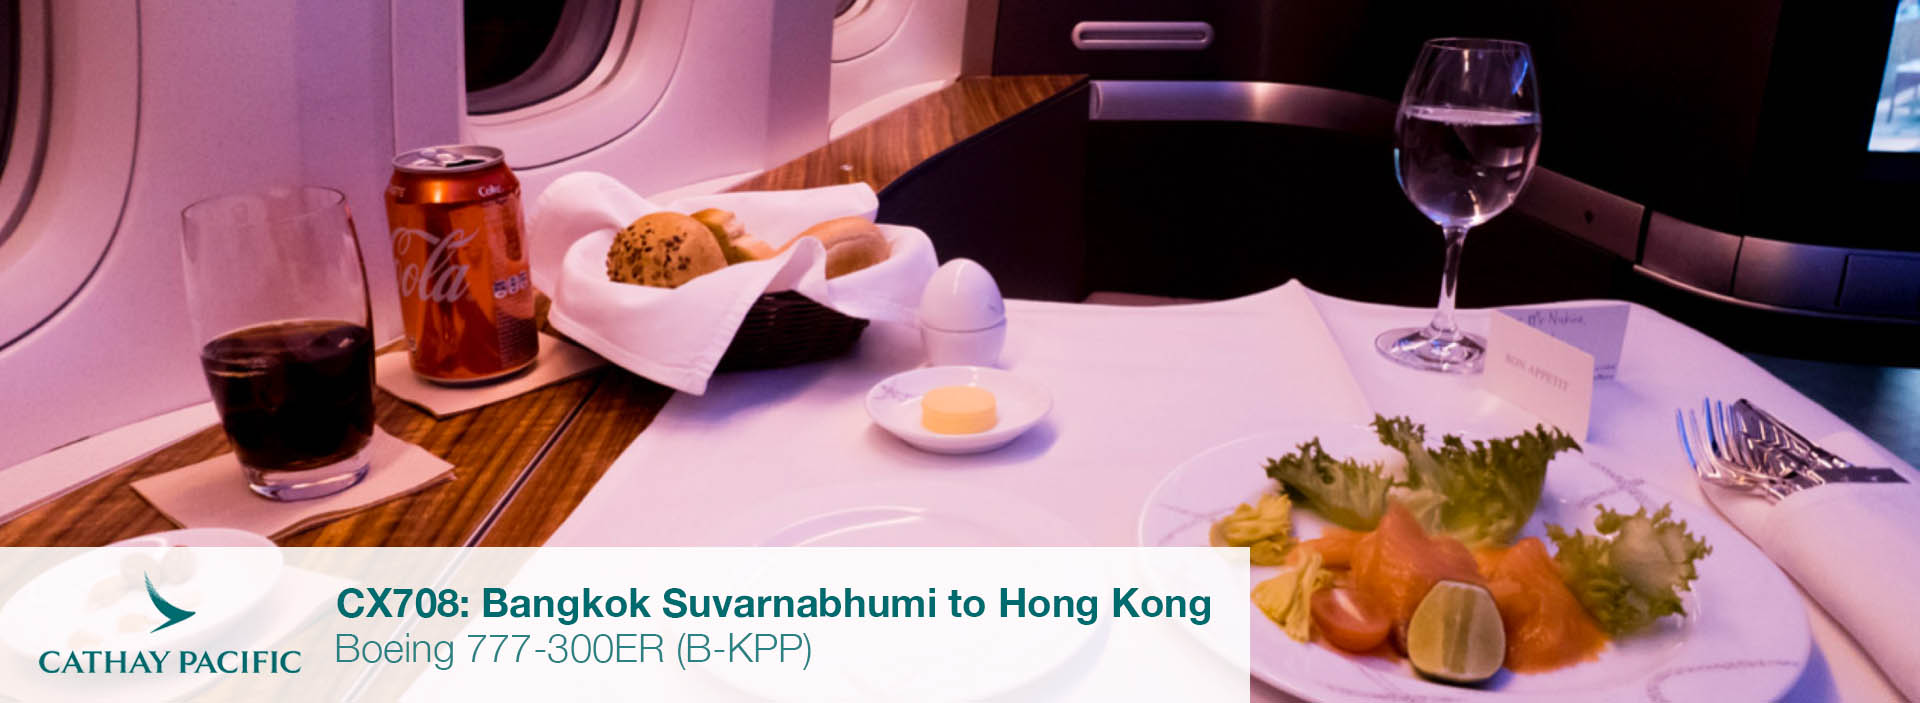 Flight Review: Cathay Pacific 777-300ER First Class from Bangkok Suvarnabhumi to Hong Kong